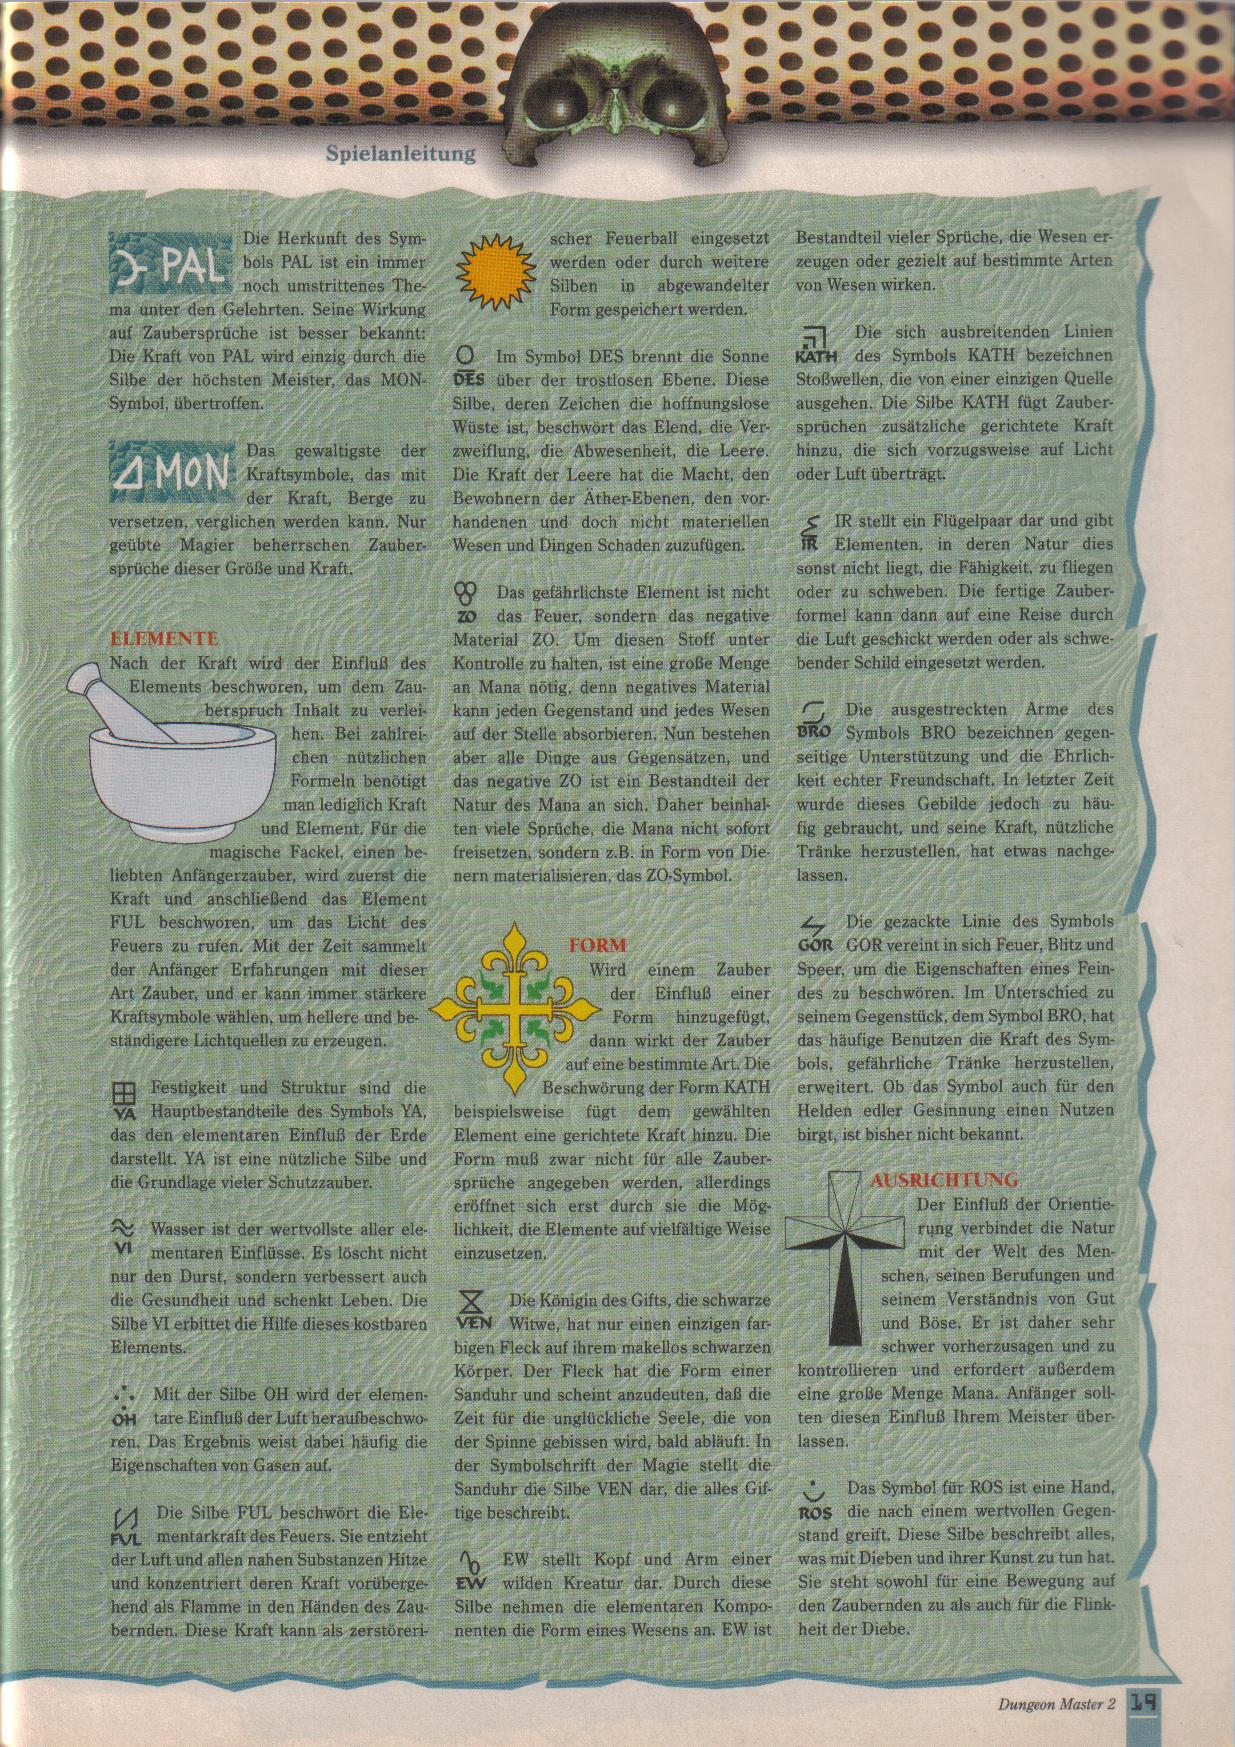 Dungeon Master II for PC (German, Best Seller Games) Page 19